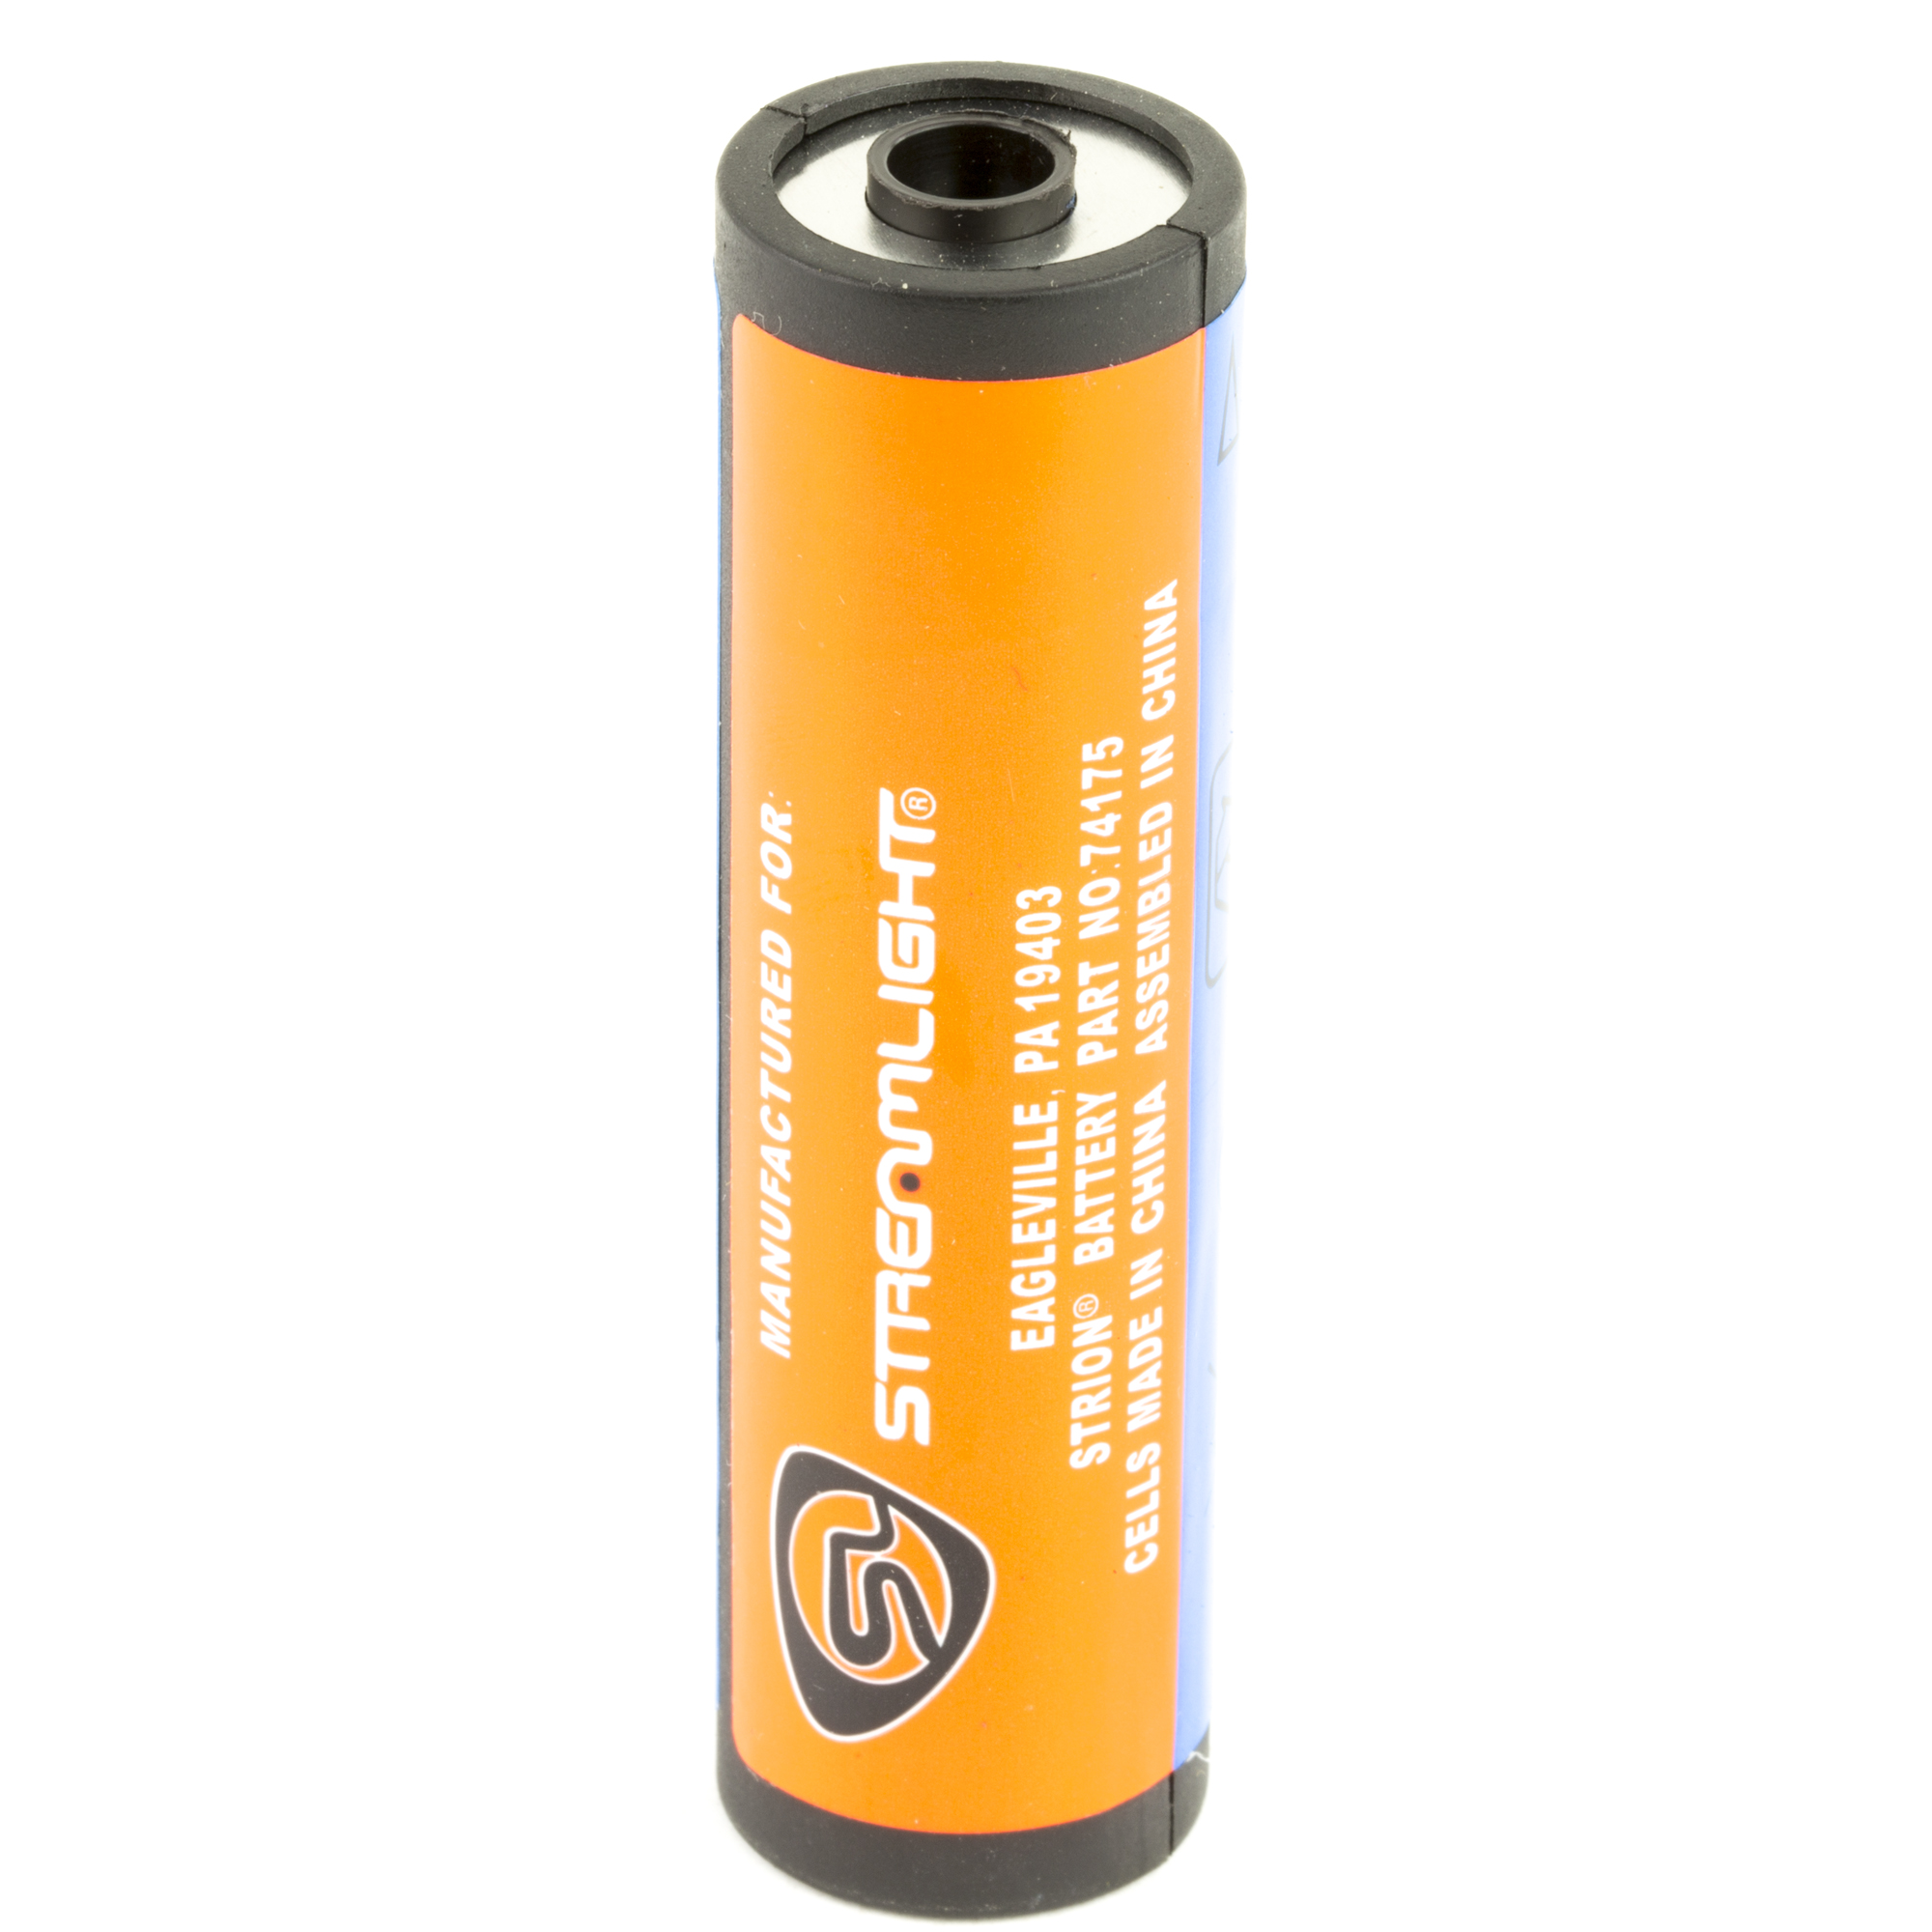 Lithium ion battery stick for Strion light.